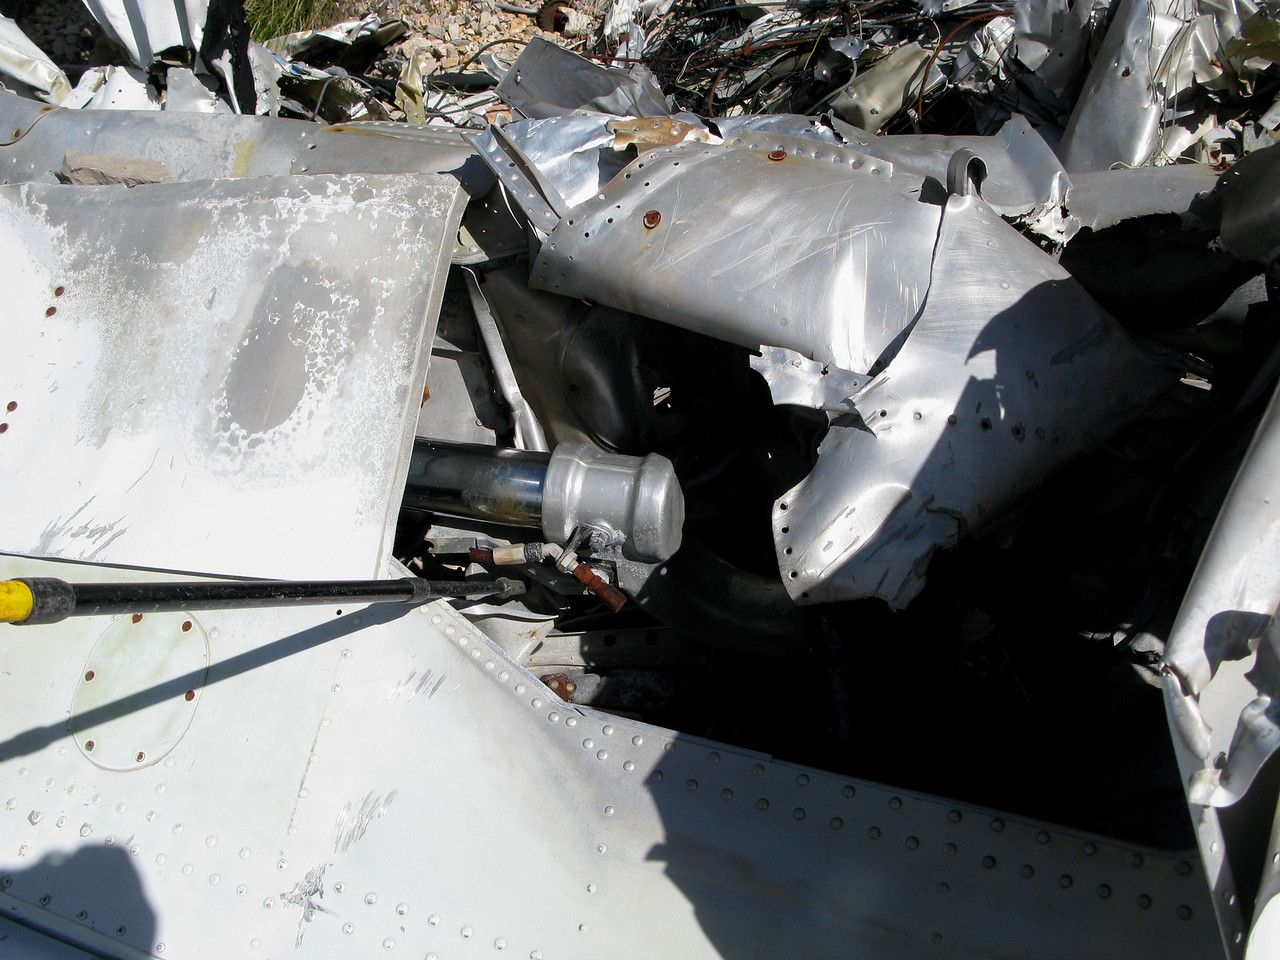 The right main landing gear strut was still attached and in the retracted position, but the wheel and tire assembly was missing and not located at the site.